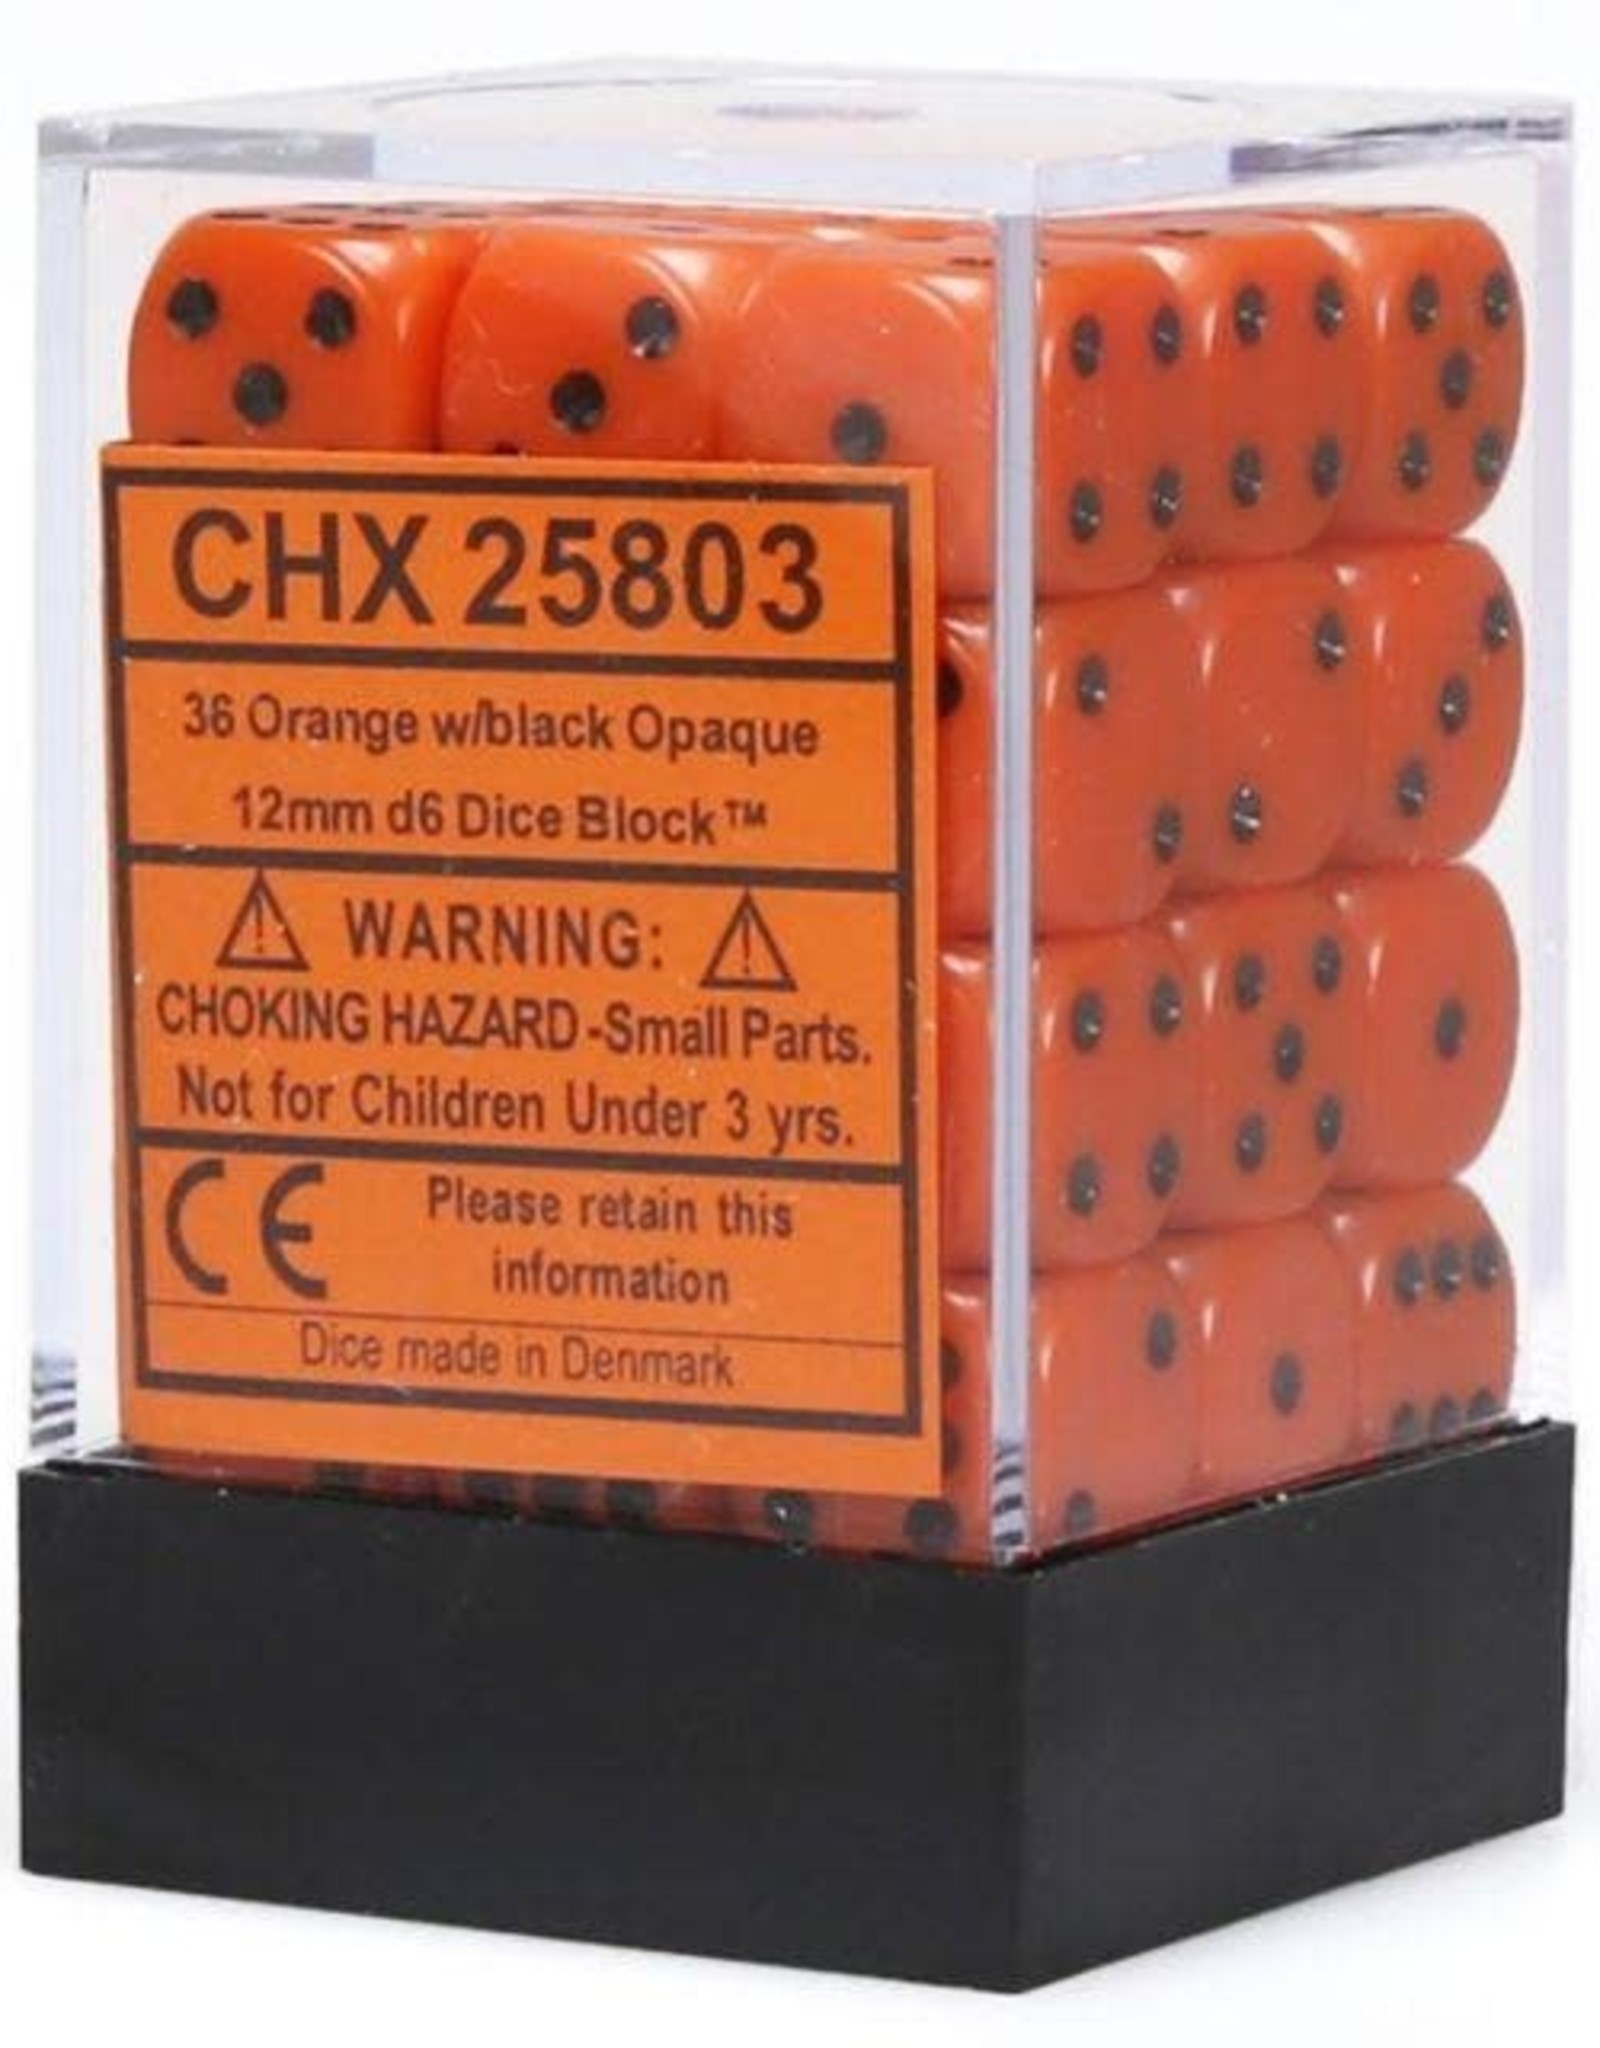 CHX 25803 OPAQUE ORANGE W/BLACK